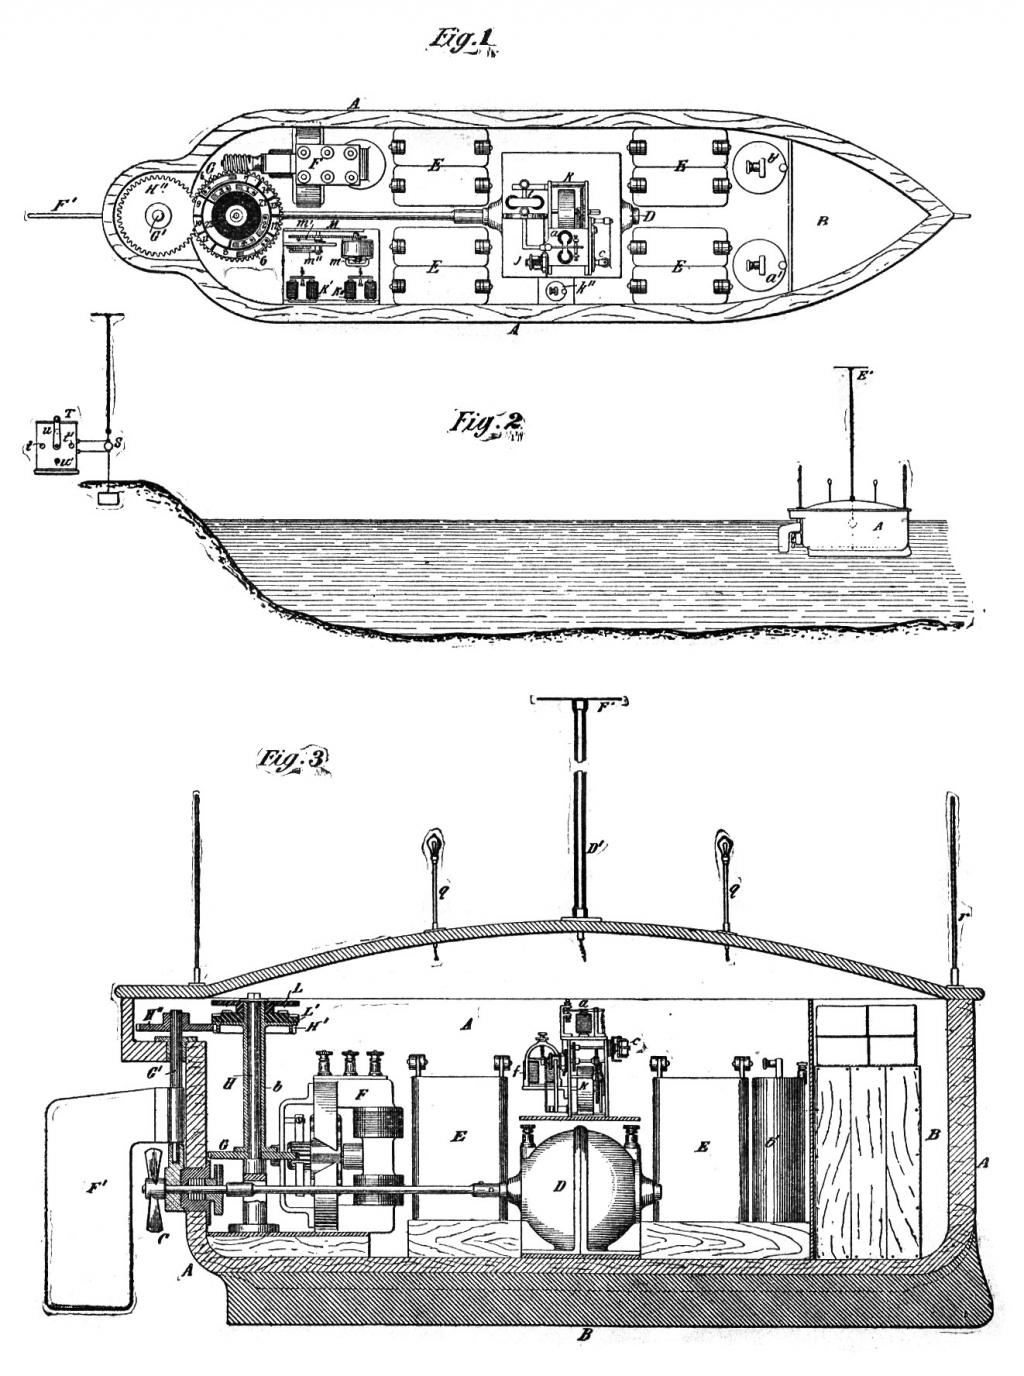 Patent drawing of Tesla's dirigible boat